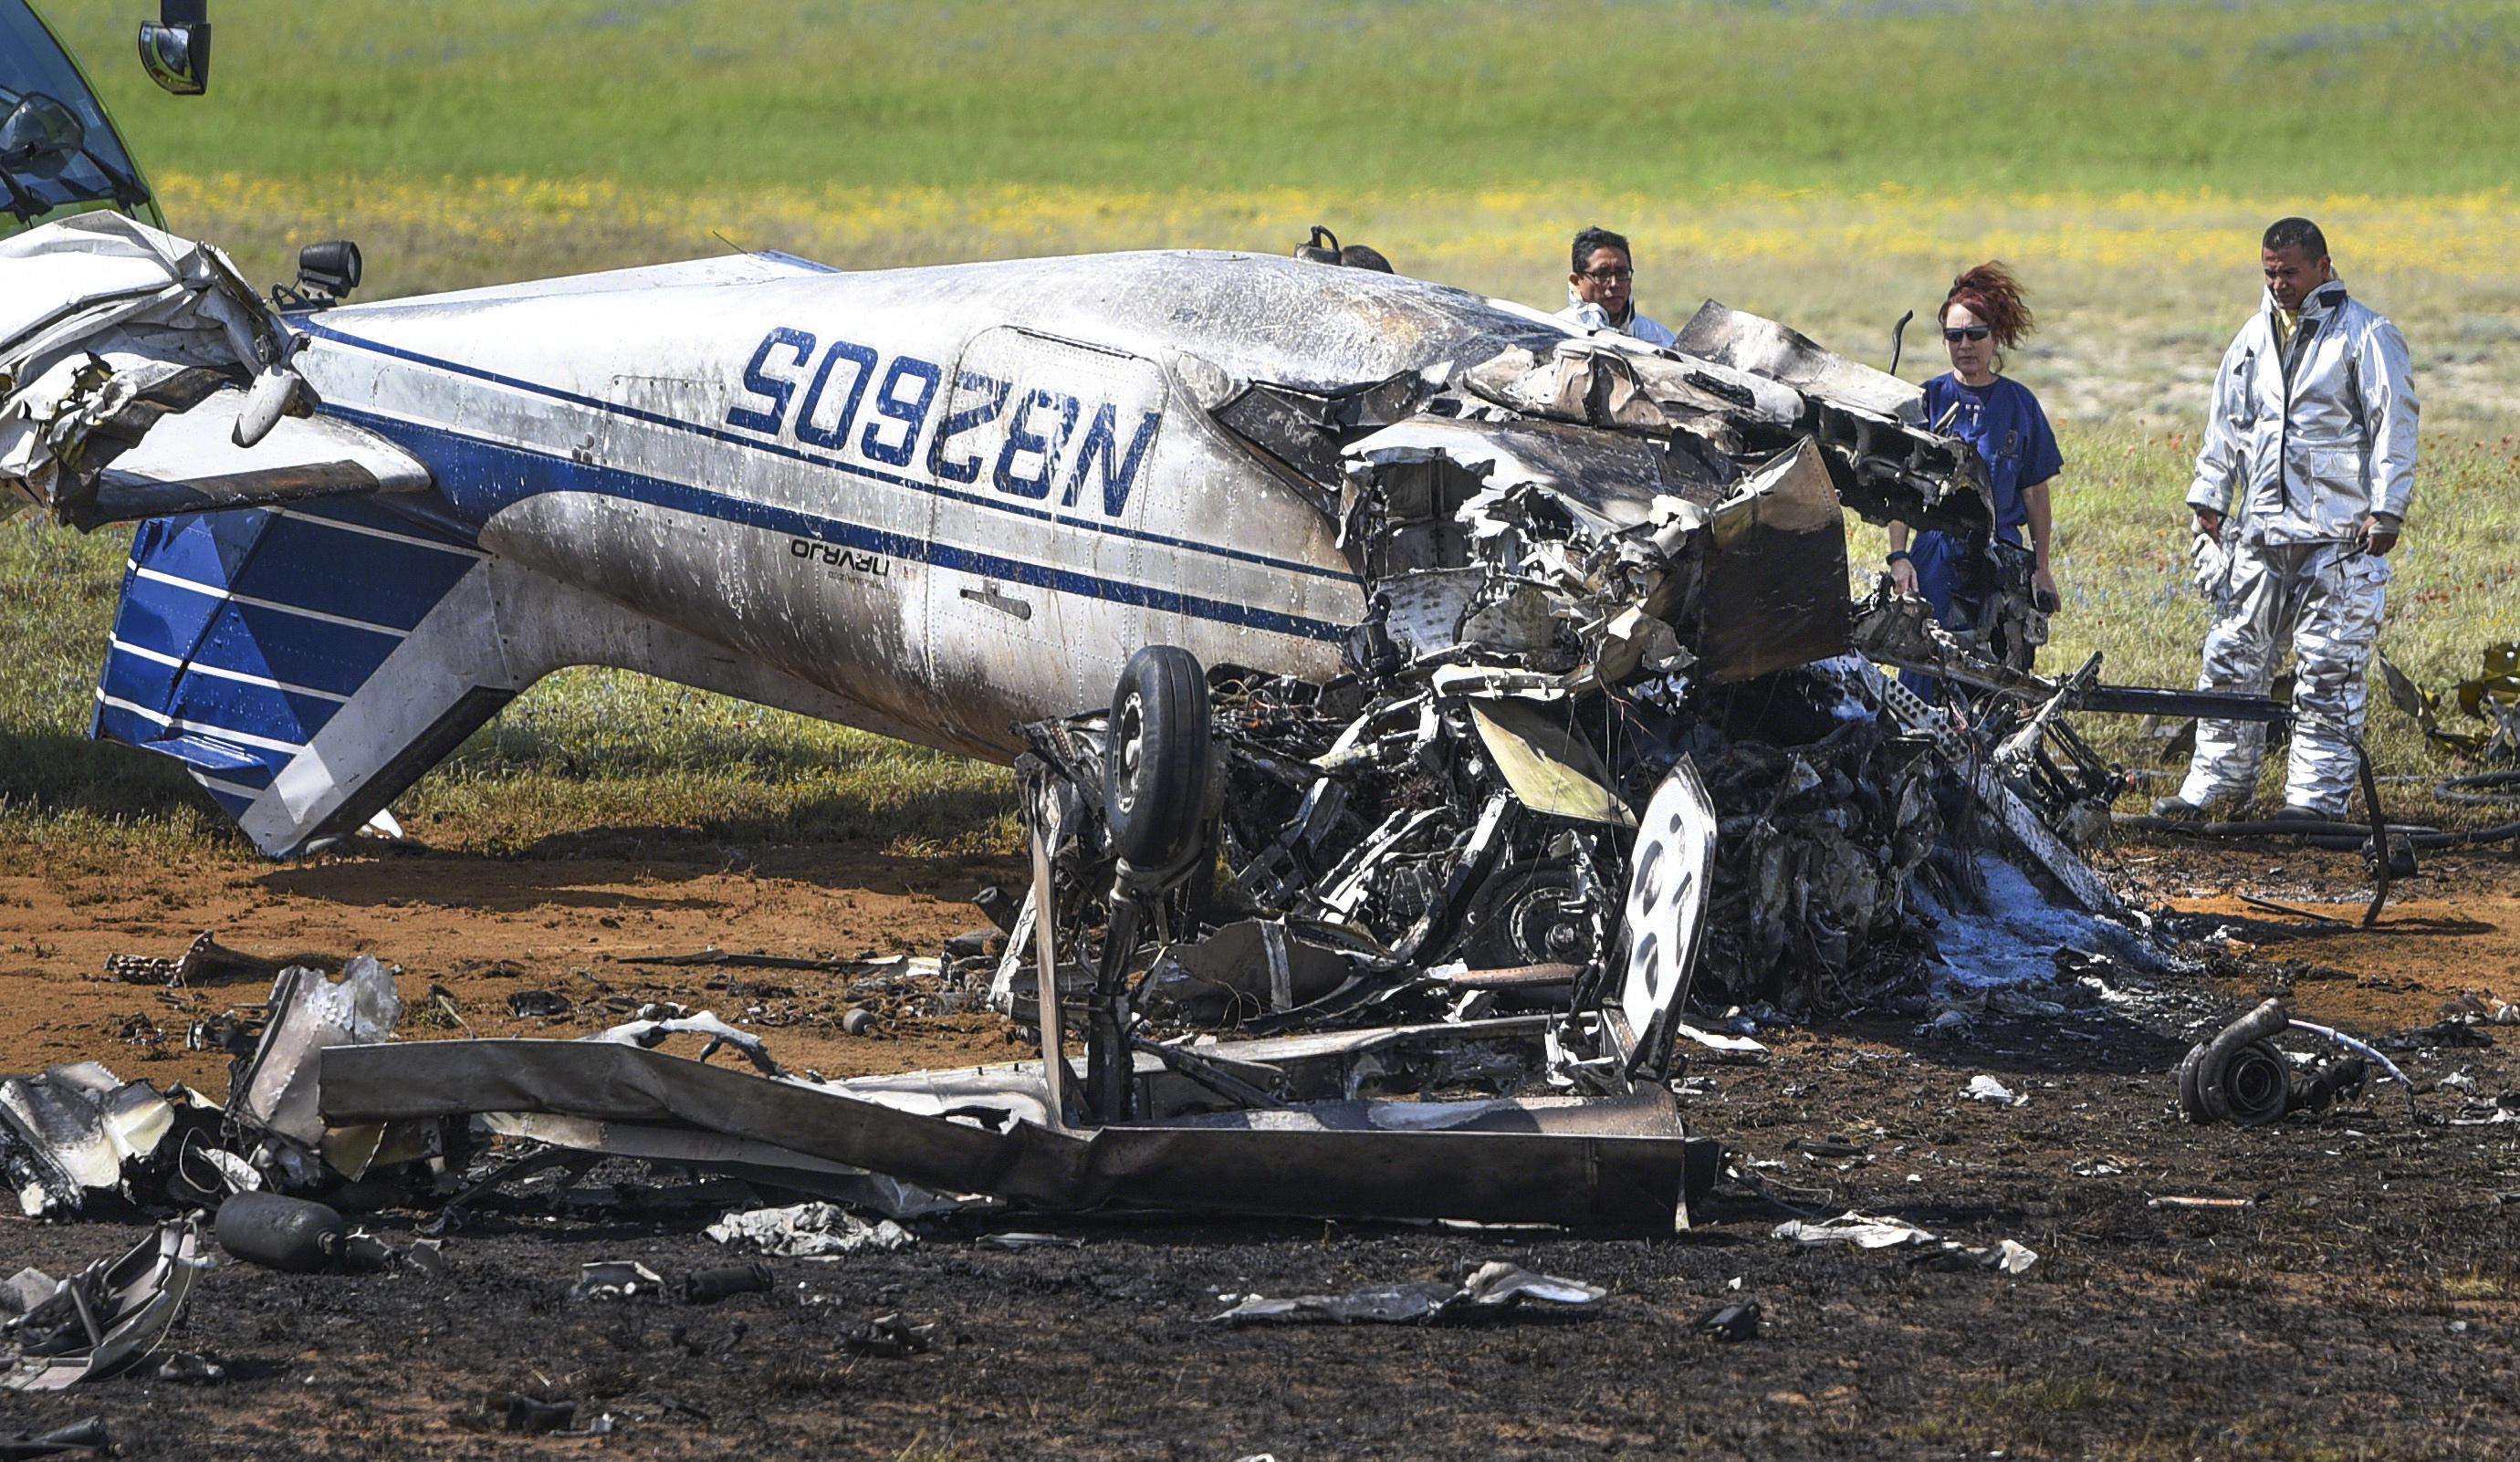 Laredo firefighters and Webb County medical examiner Corinne Stern look through the wreckage of a small plane that crashed at the Laredo International Airport in Laredo, Texas on Mar. 8, 2018.